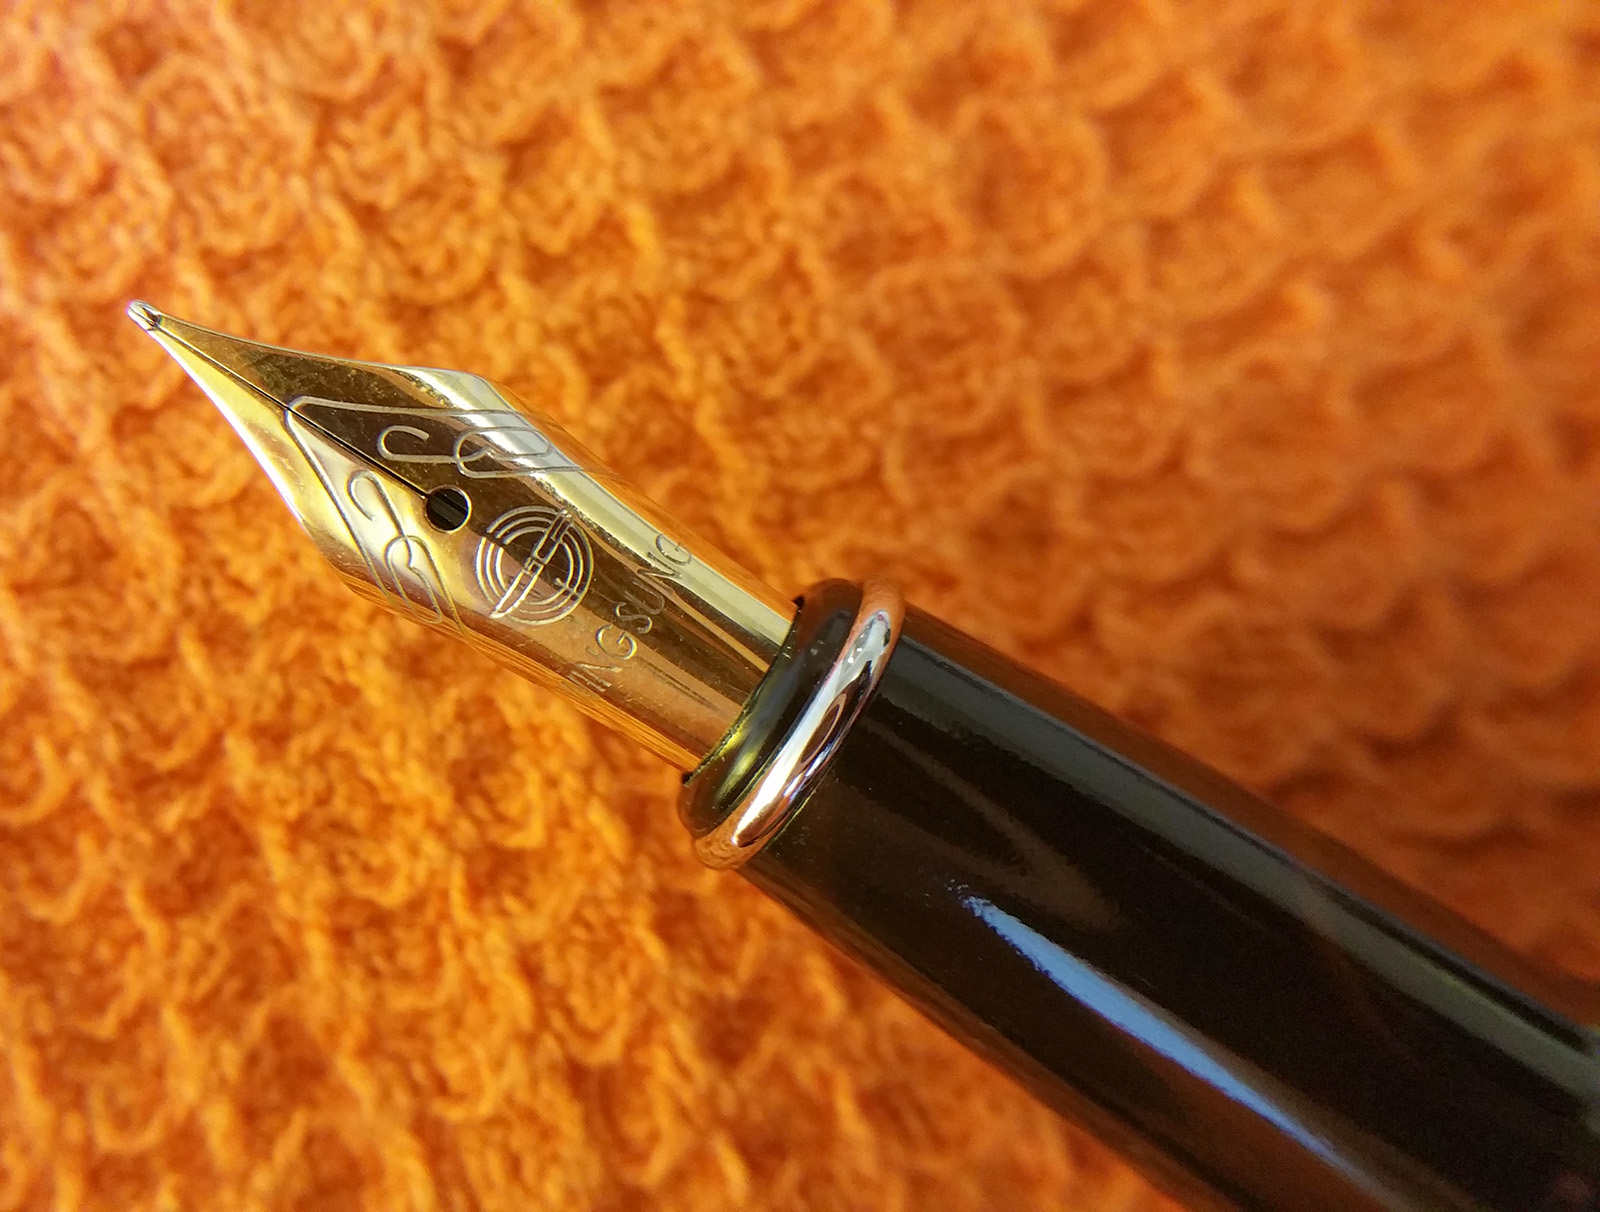 A Close-Up View of the Section and Nib of the Wing Sung 3203 Fountain Pen